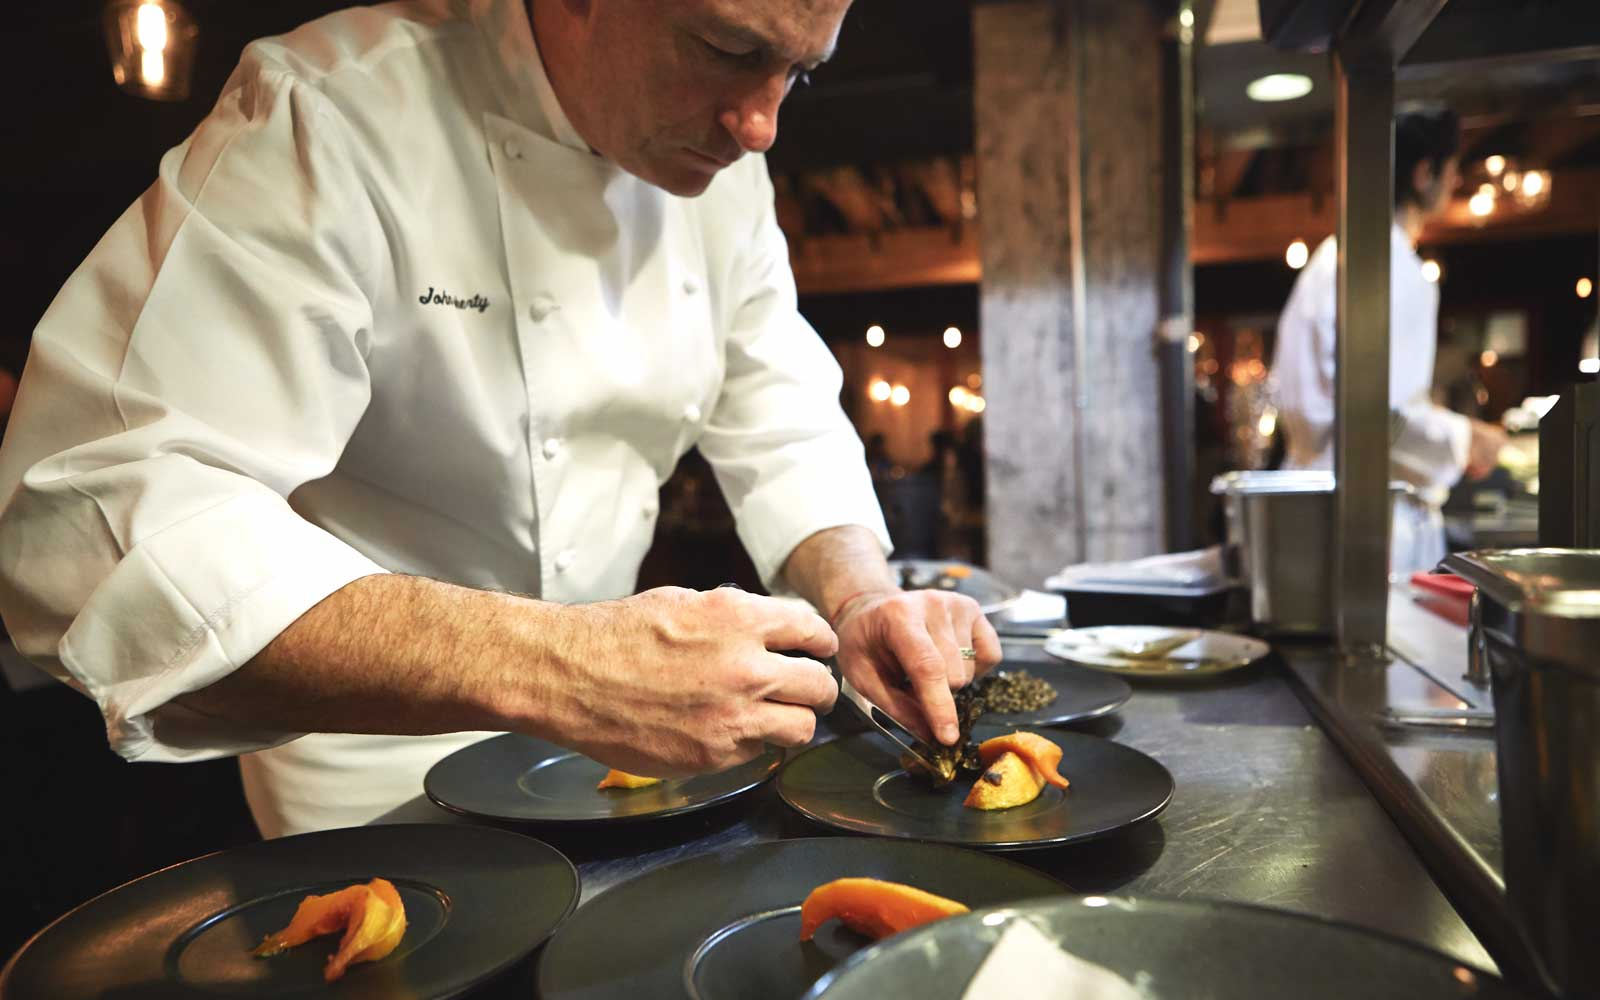 Blackbarn Restaurant, New York City, Chef John Doherty